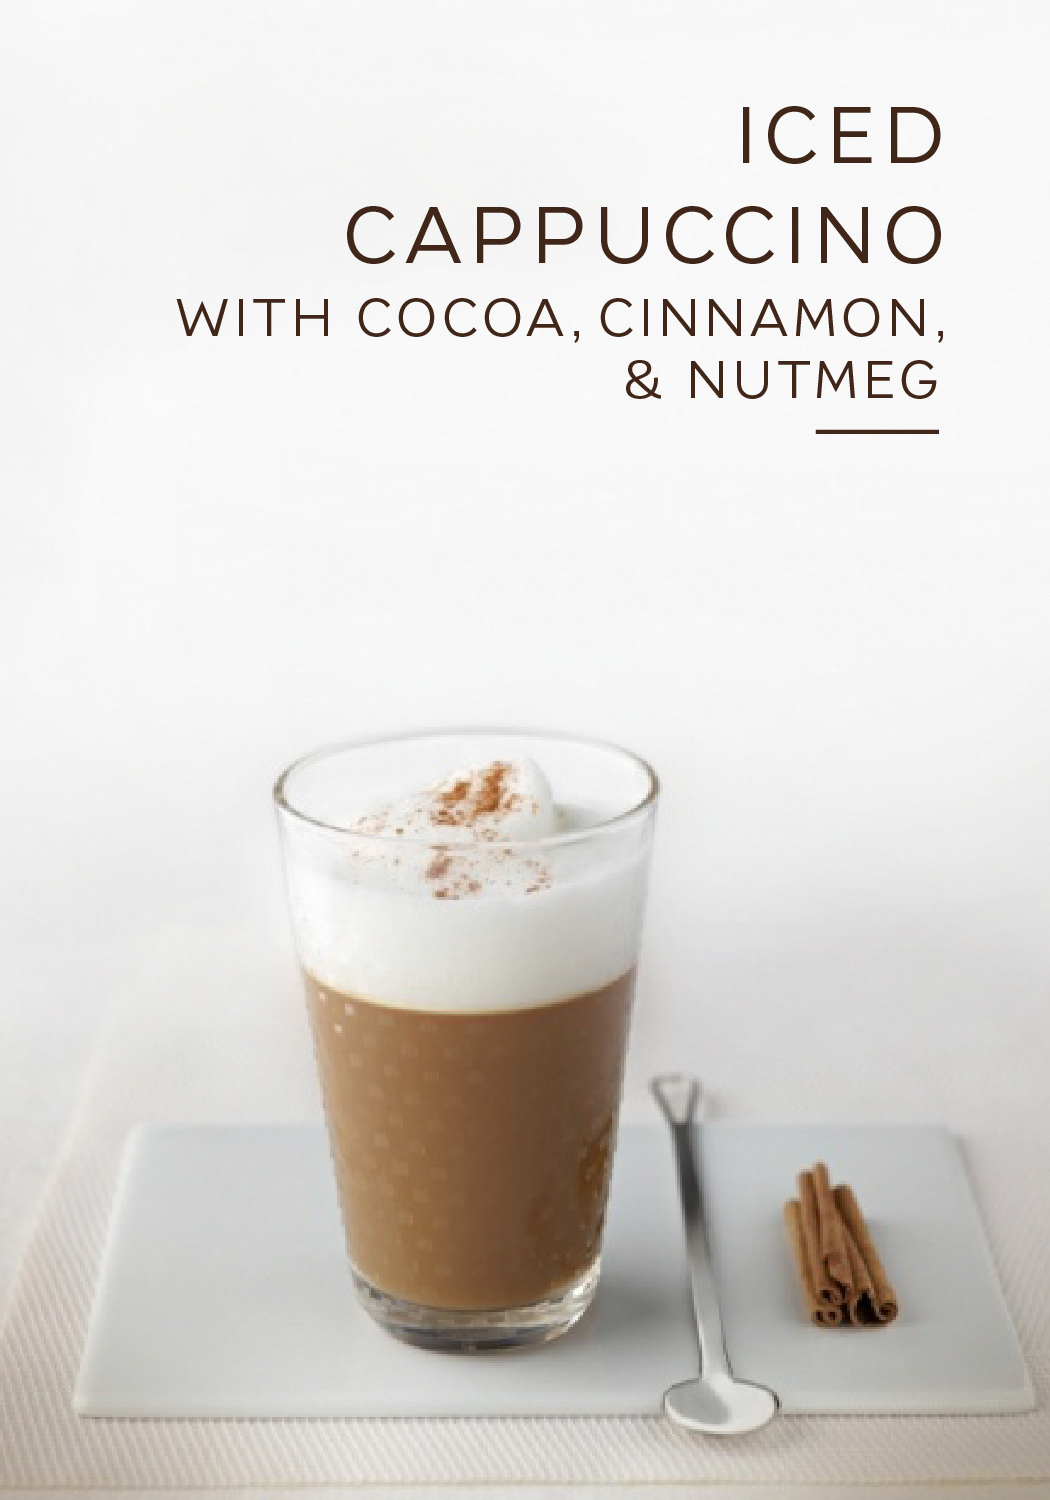 This easy Iced Cappuccino recipe will change everything you know about the classic gourmet coffee beverage. An aromatic blend of cinnamon, nutmeg, and cocoa add a subtle heat to this otherwise cold beverage. Don't let the winter cold keep you from enjoying this indulgent drink.